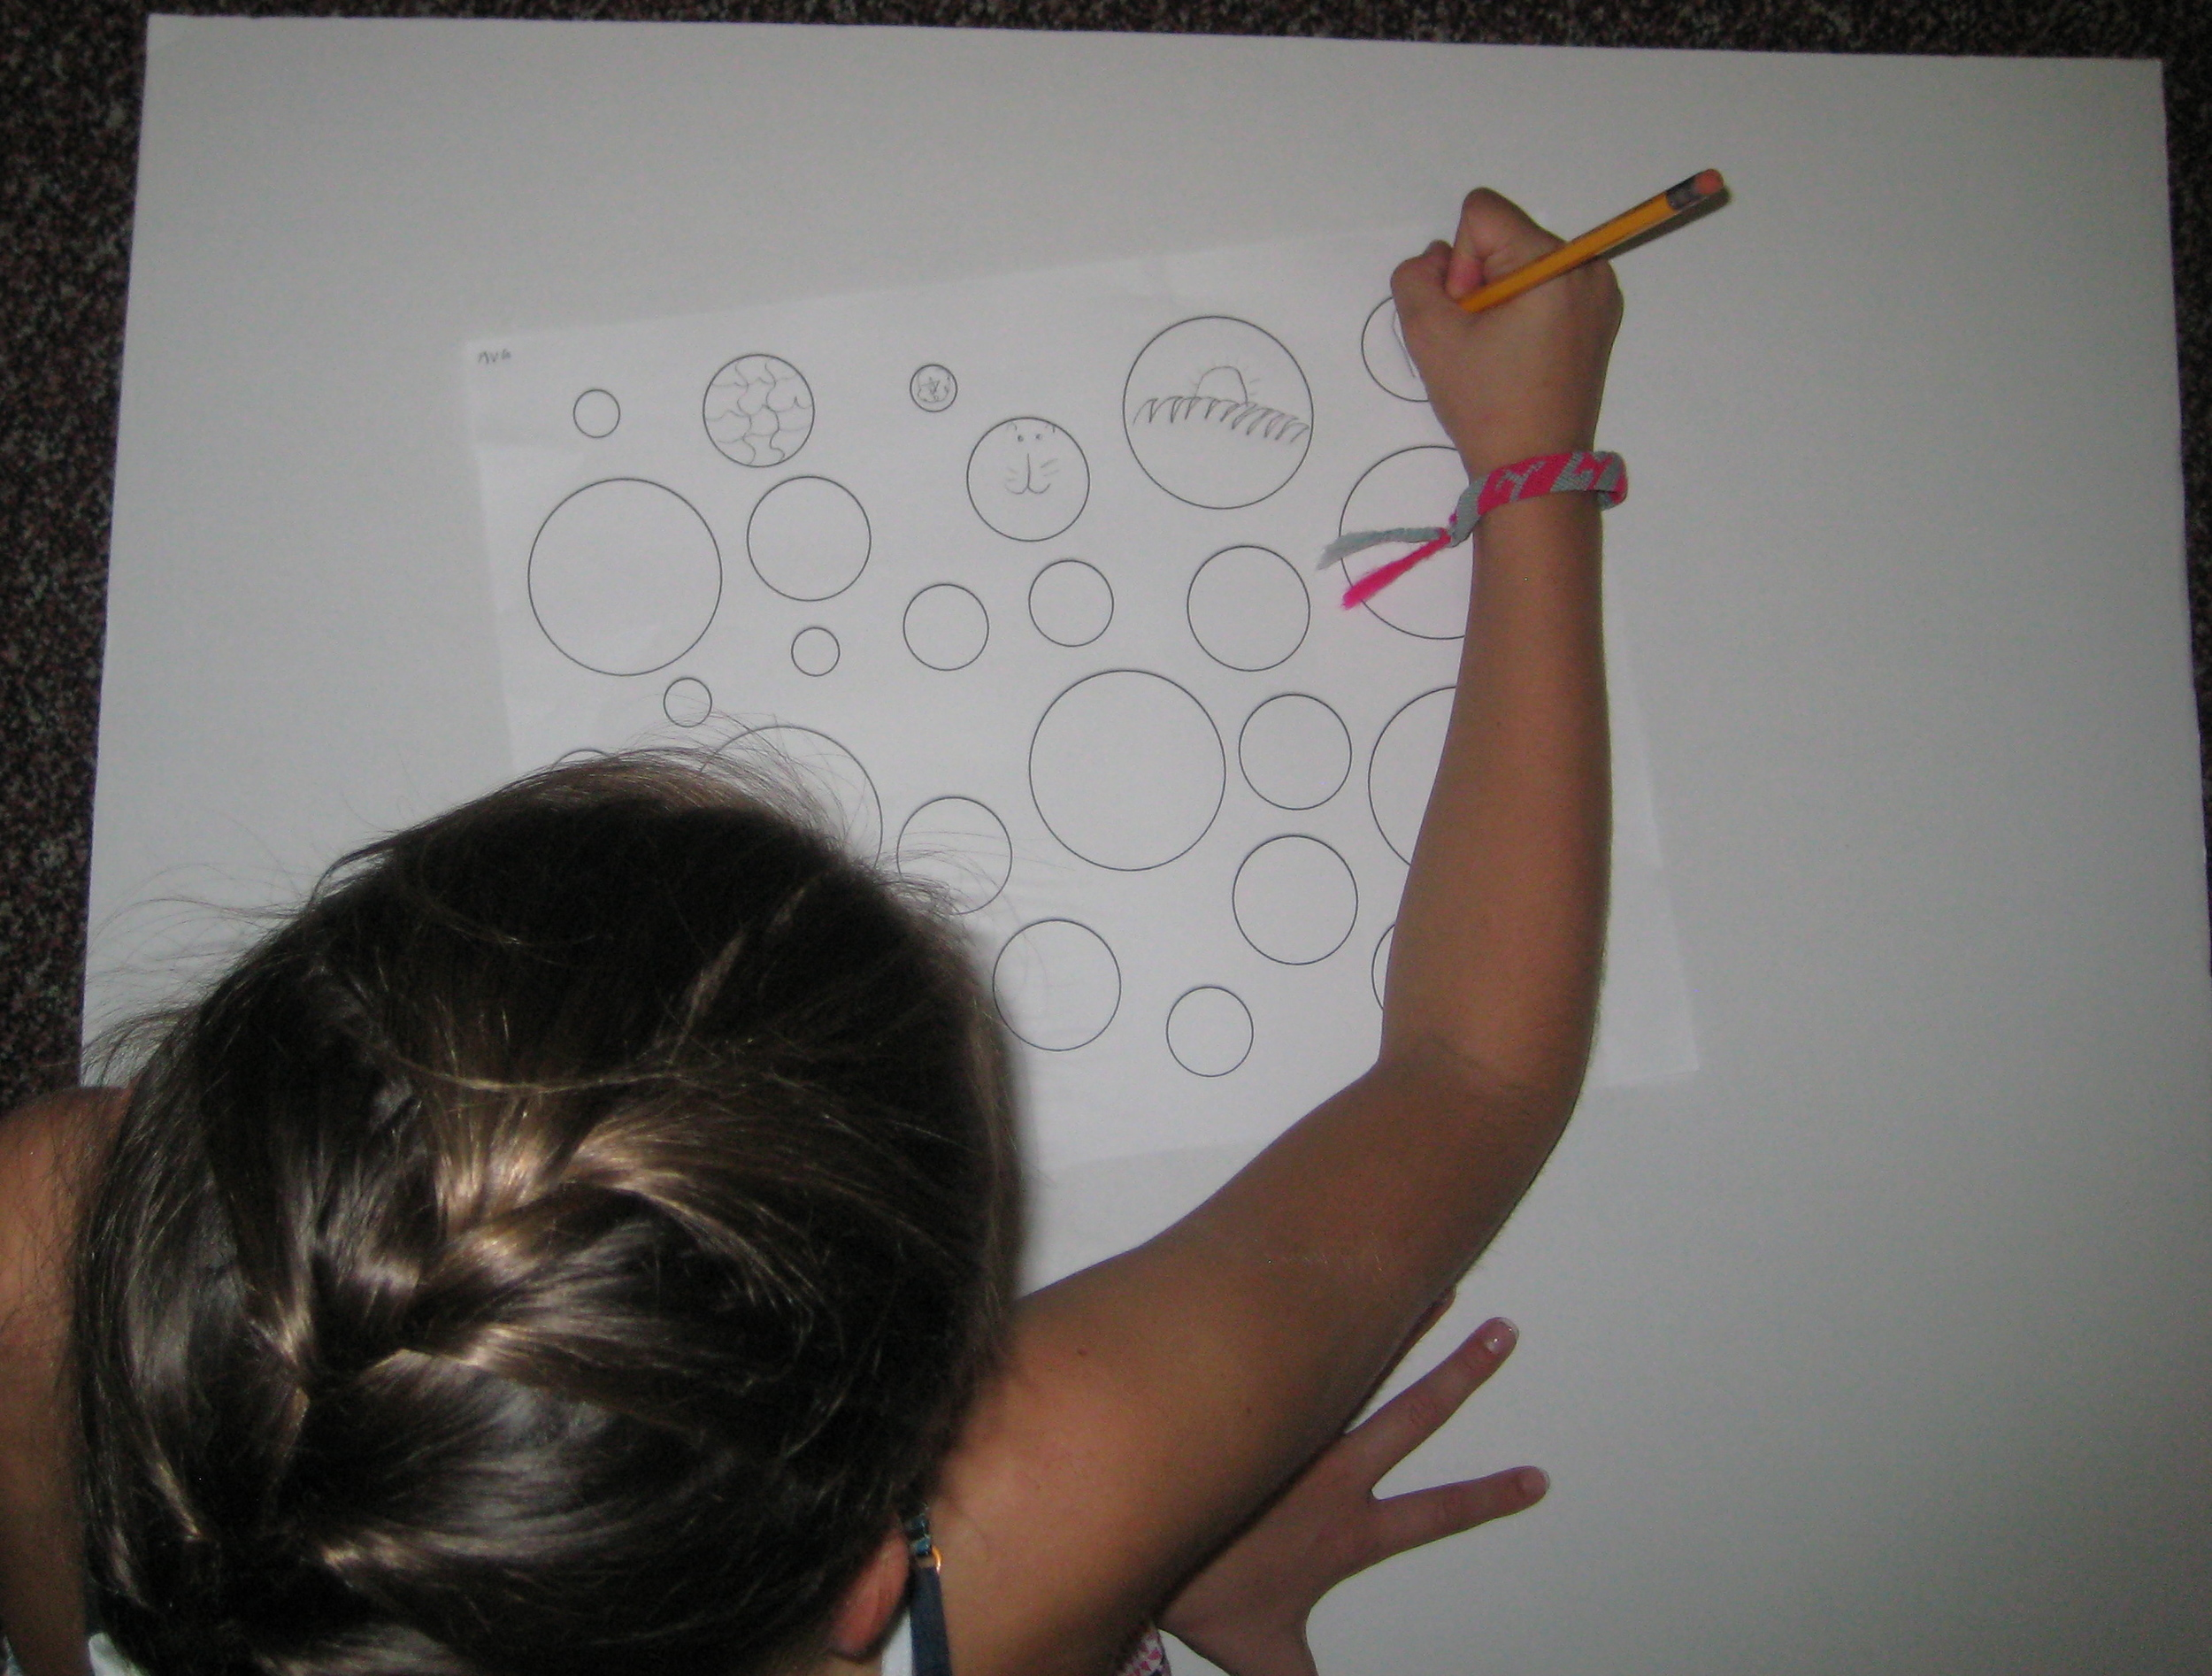 Student at work brainstorming ideas